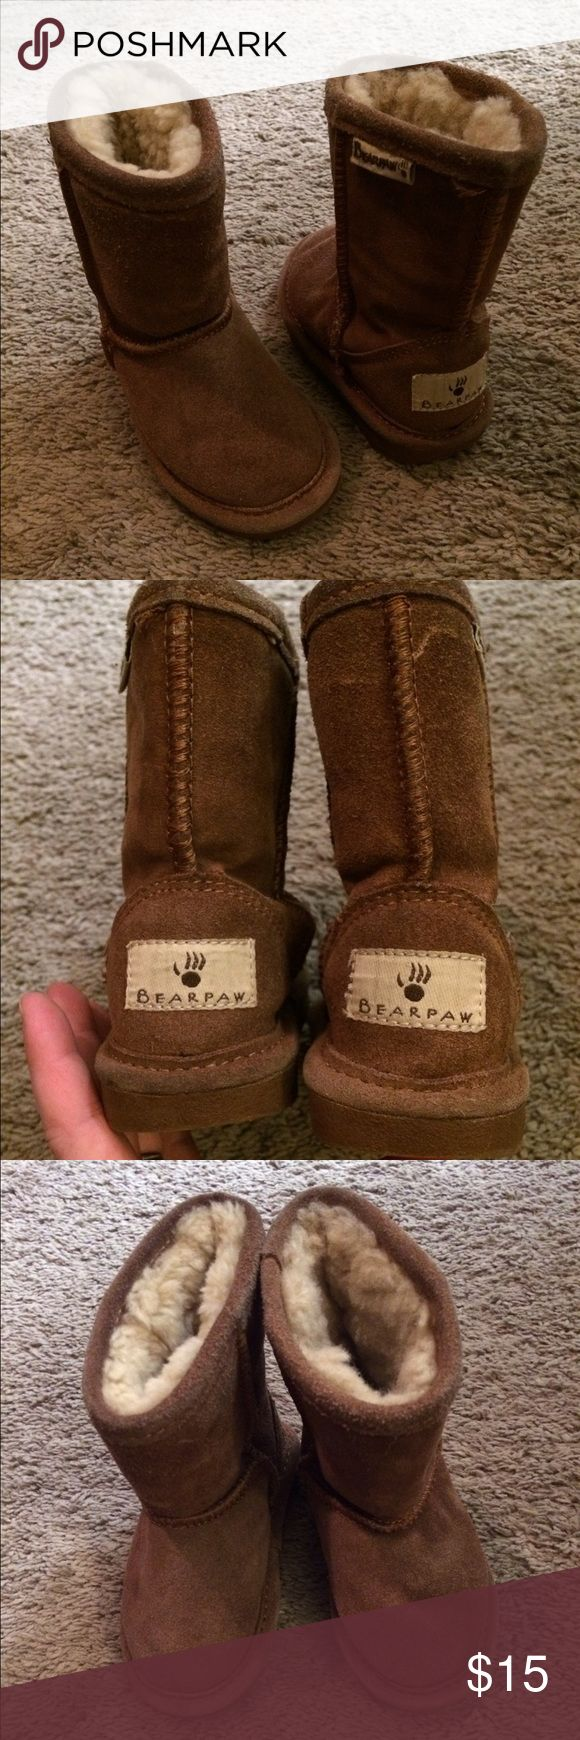 Girls BearPaw Boots This boots are in great shape with only minimal signs of wear! Soles look great as well! Great addition to your little girl's closet. She will love these furry boots for this winter! BearPaw Shoes Boots